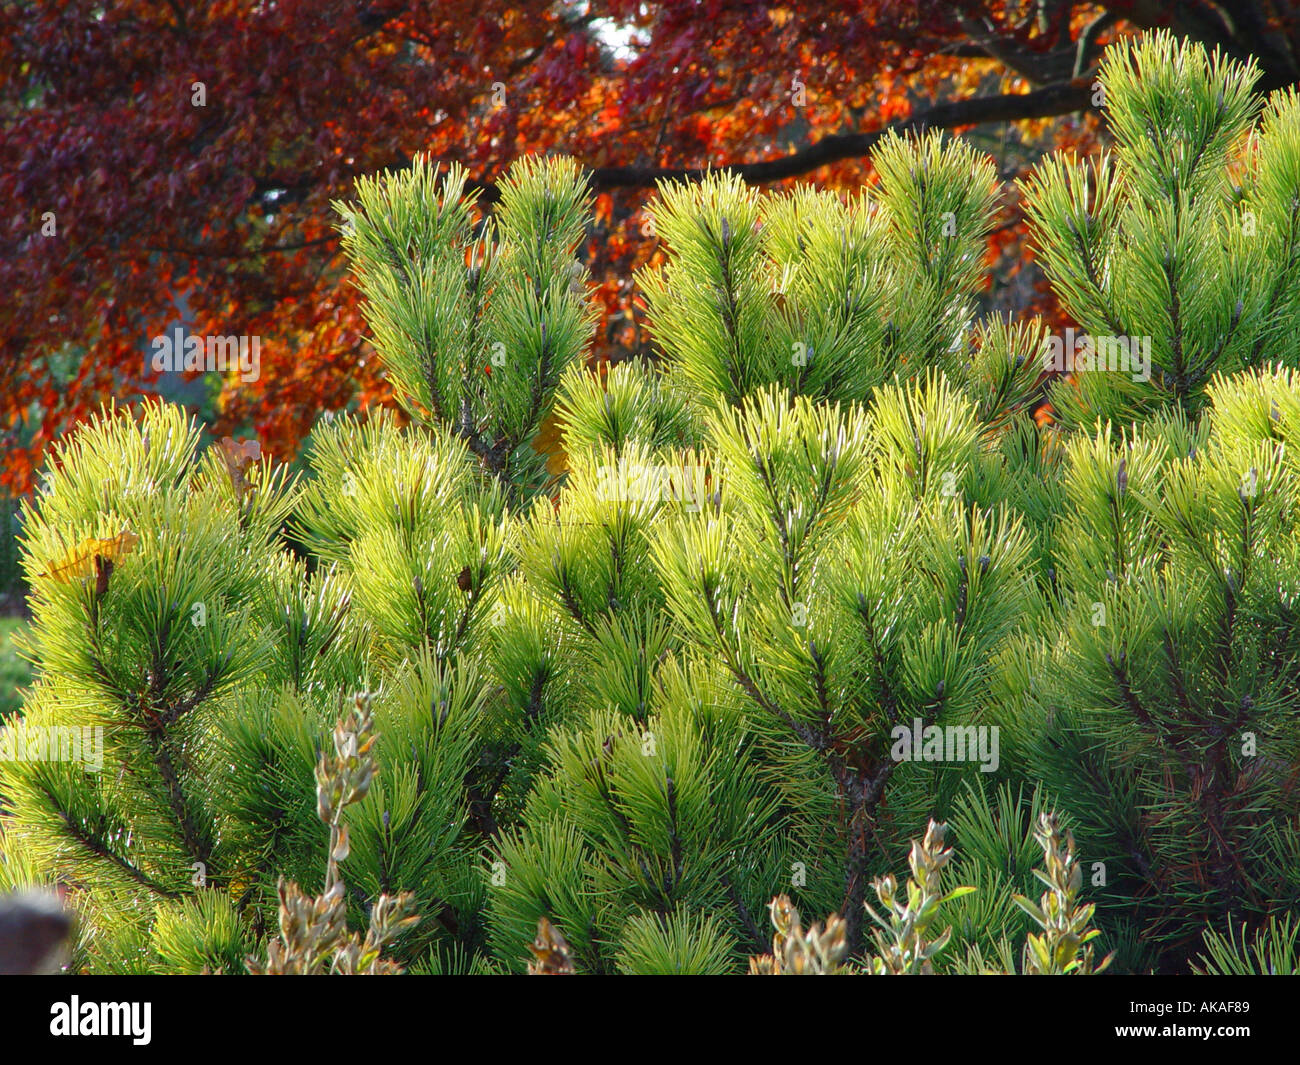 Pinus mugo Ophir with autumn tinted acer in background - Stock Image